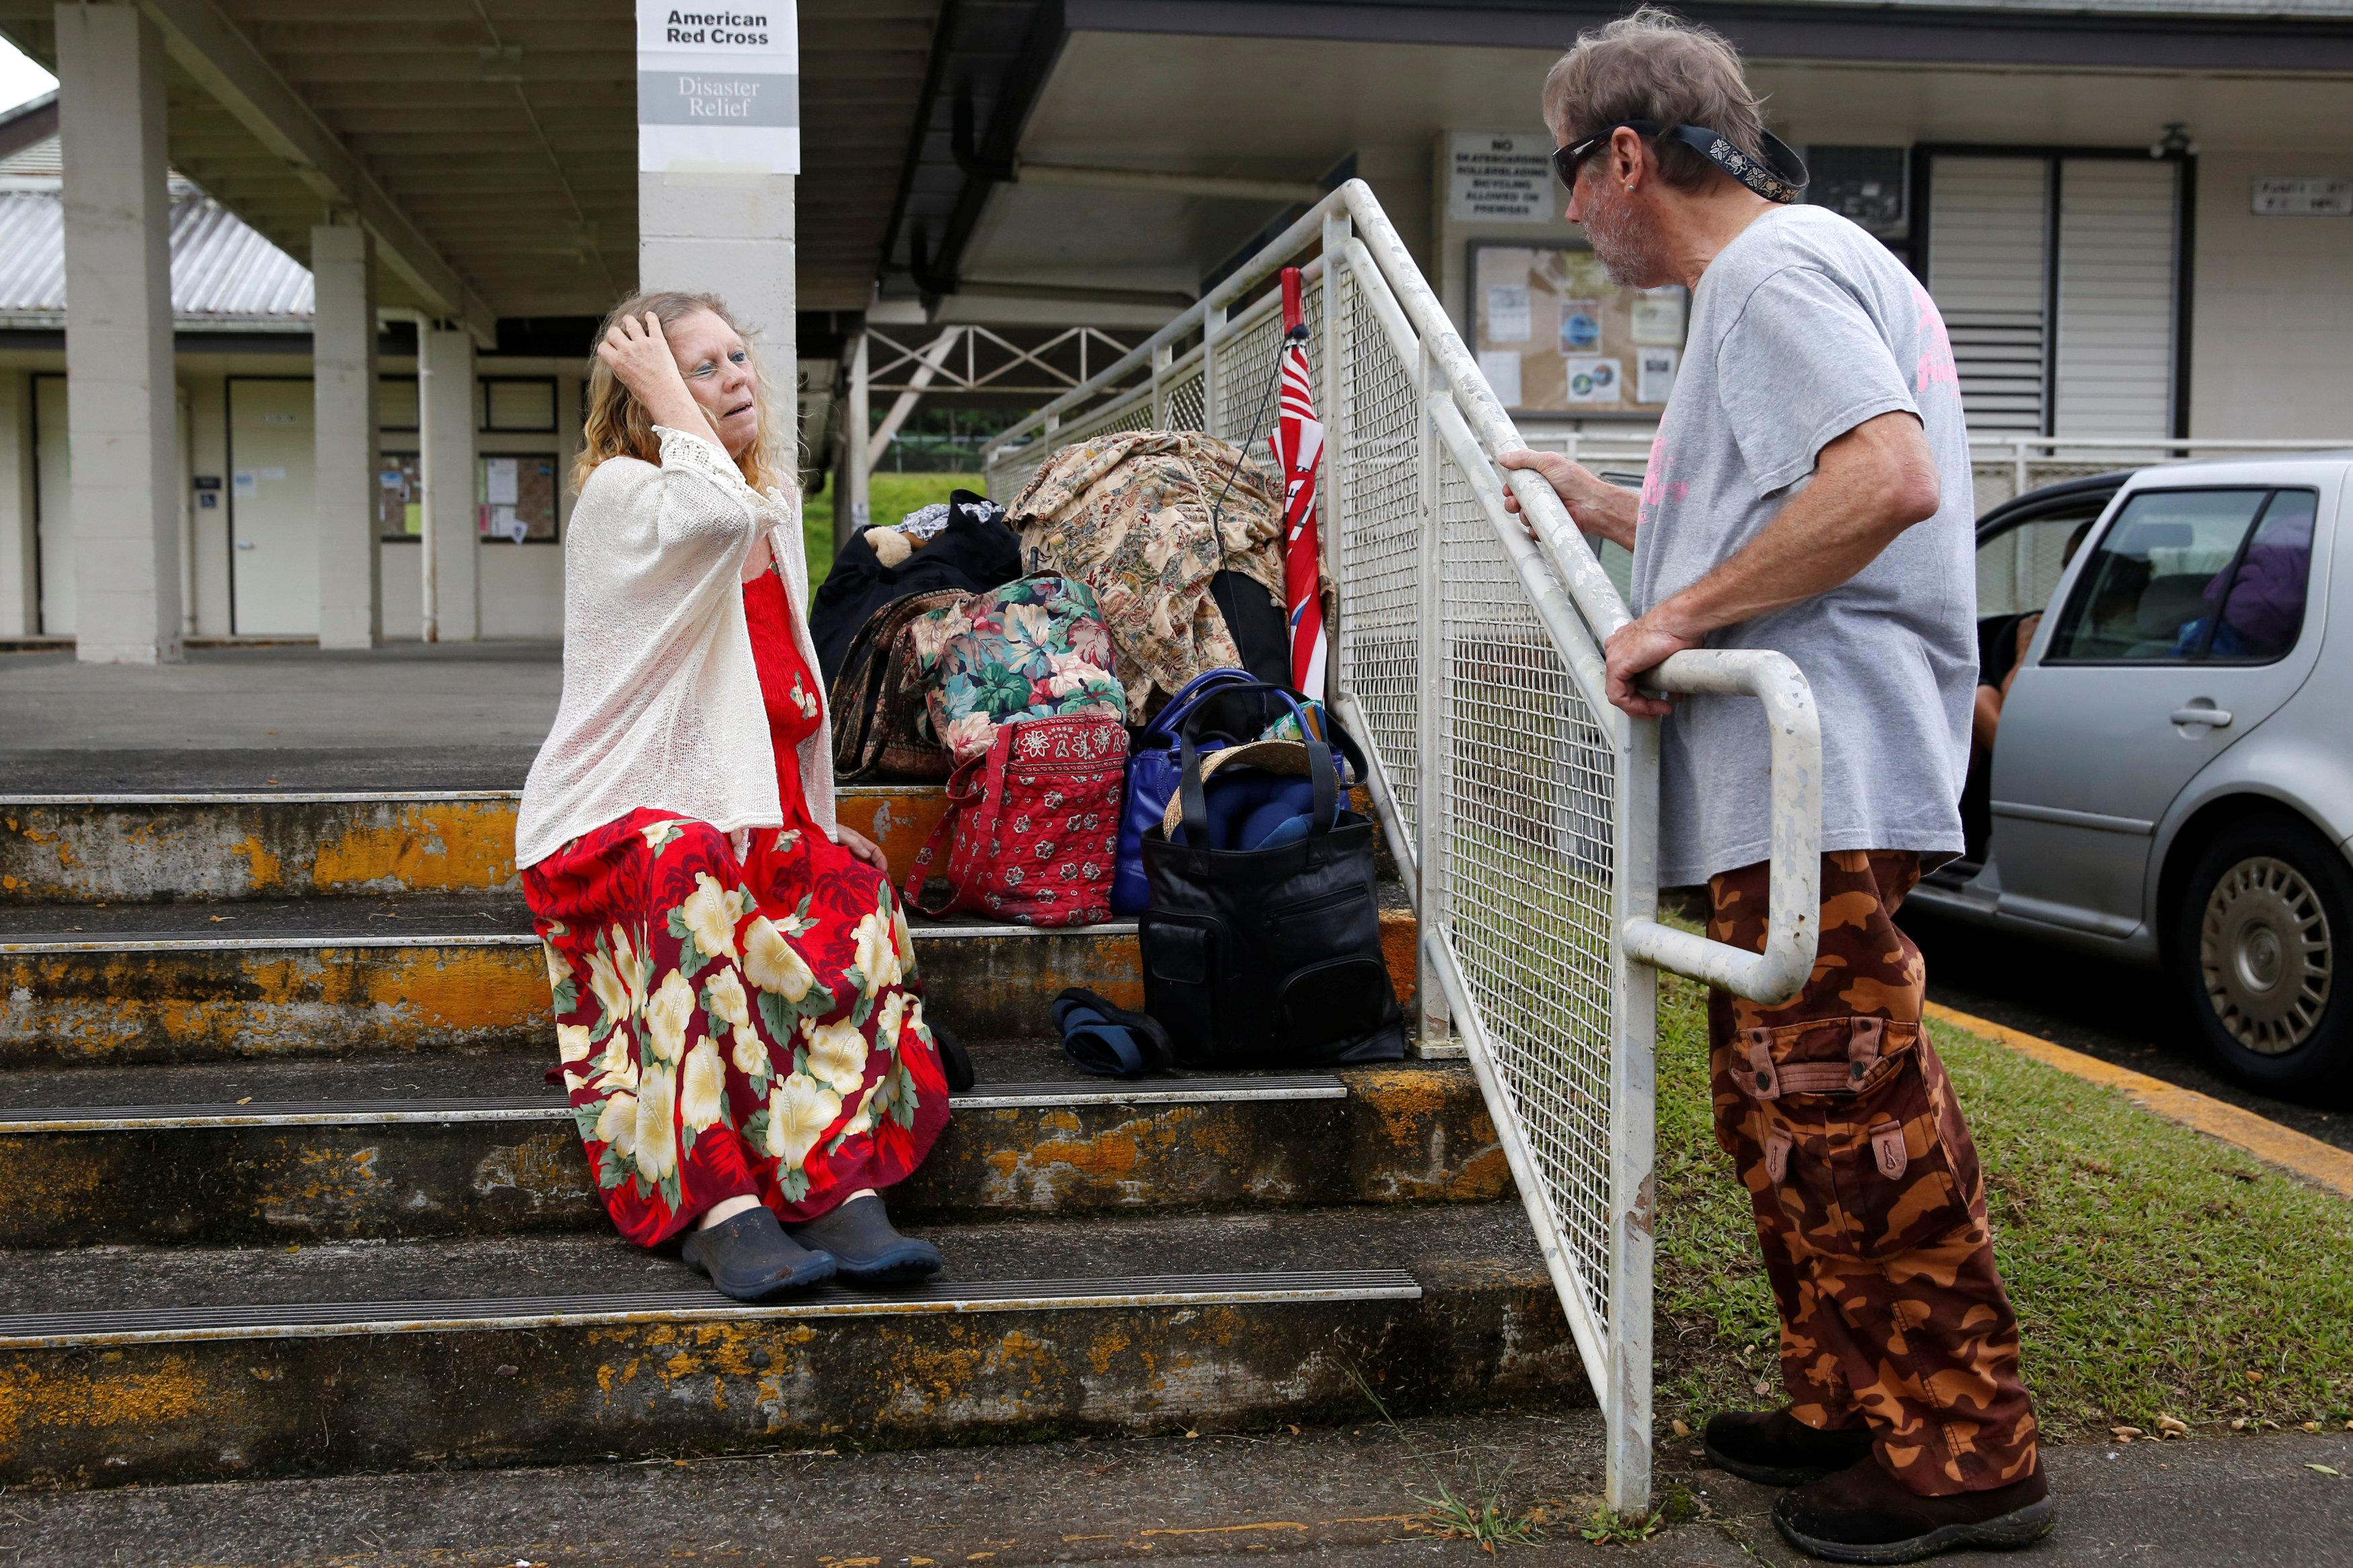 Carolyn McNamara, 70, talks with her neighbour, Paul Campbell, 68, at an evacuation center in Pahoa after moving out of their homes in Leilani Estates after the Kilauea Volcano erupted on Thursday after a series of earthquakes over the last couple of days, in Hawaii, U.S., May 4, 2018.  Terray Sylvester